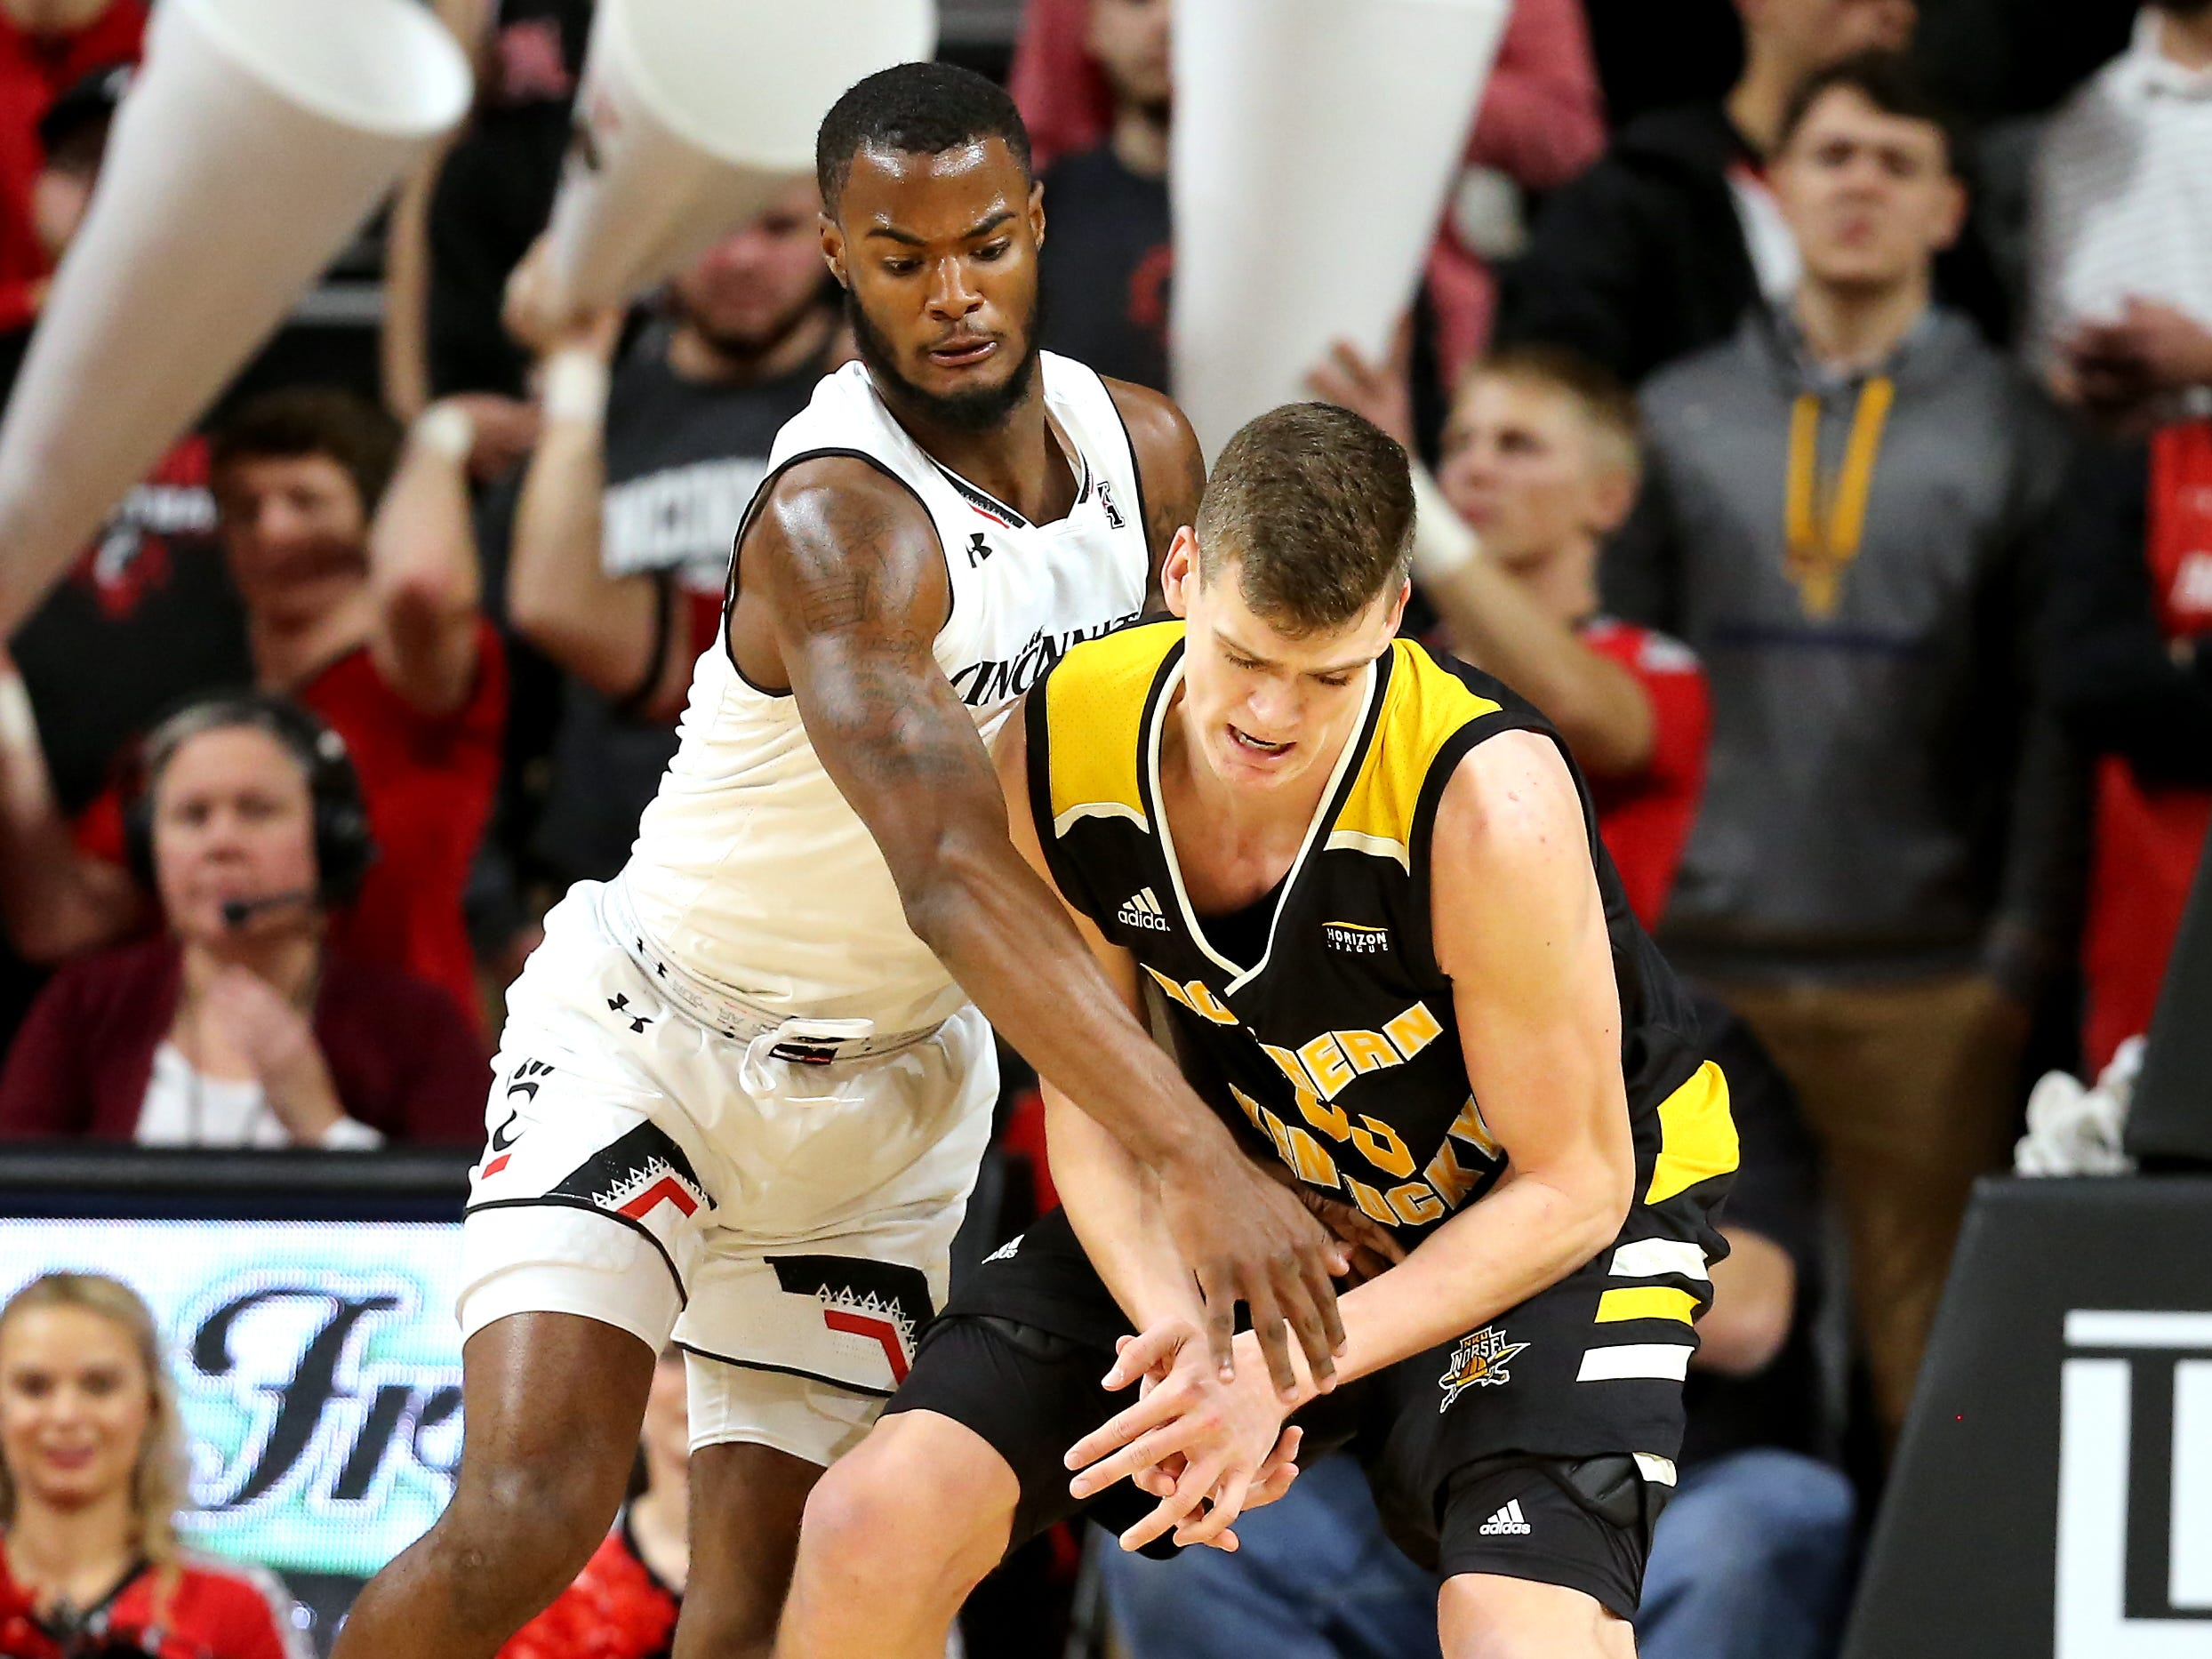 Cincinnati Bearcats guard Trevor Moore (5) chases a loose ball from Northern Kentucky Norse center Chris Vogt (33) in the first half of an NCAA college basketball game, Tuesday, Dec. 4, 2018, at Fifth Third Arena in Cincinnati.